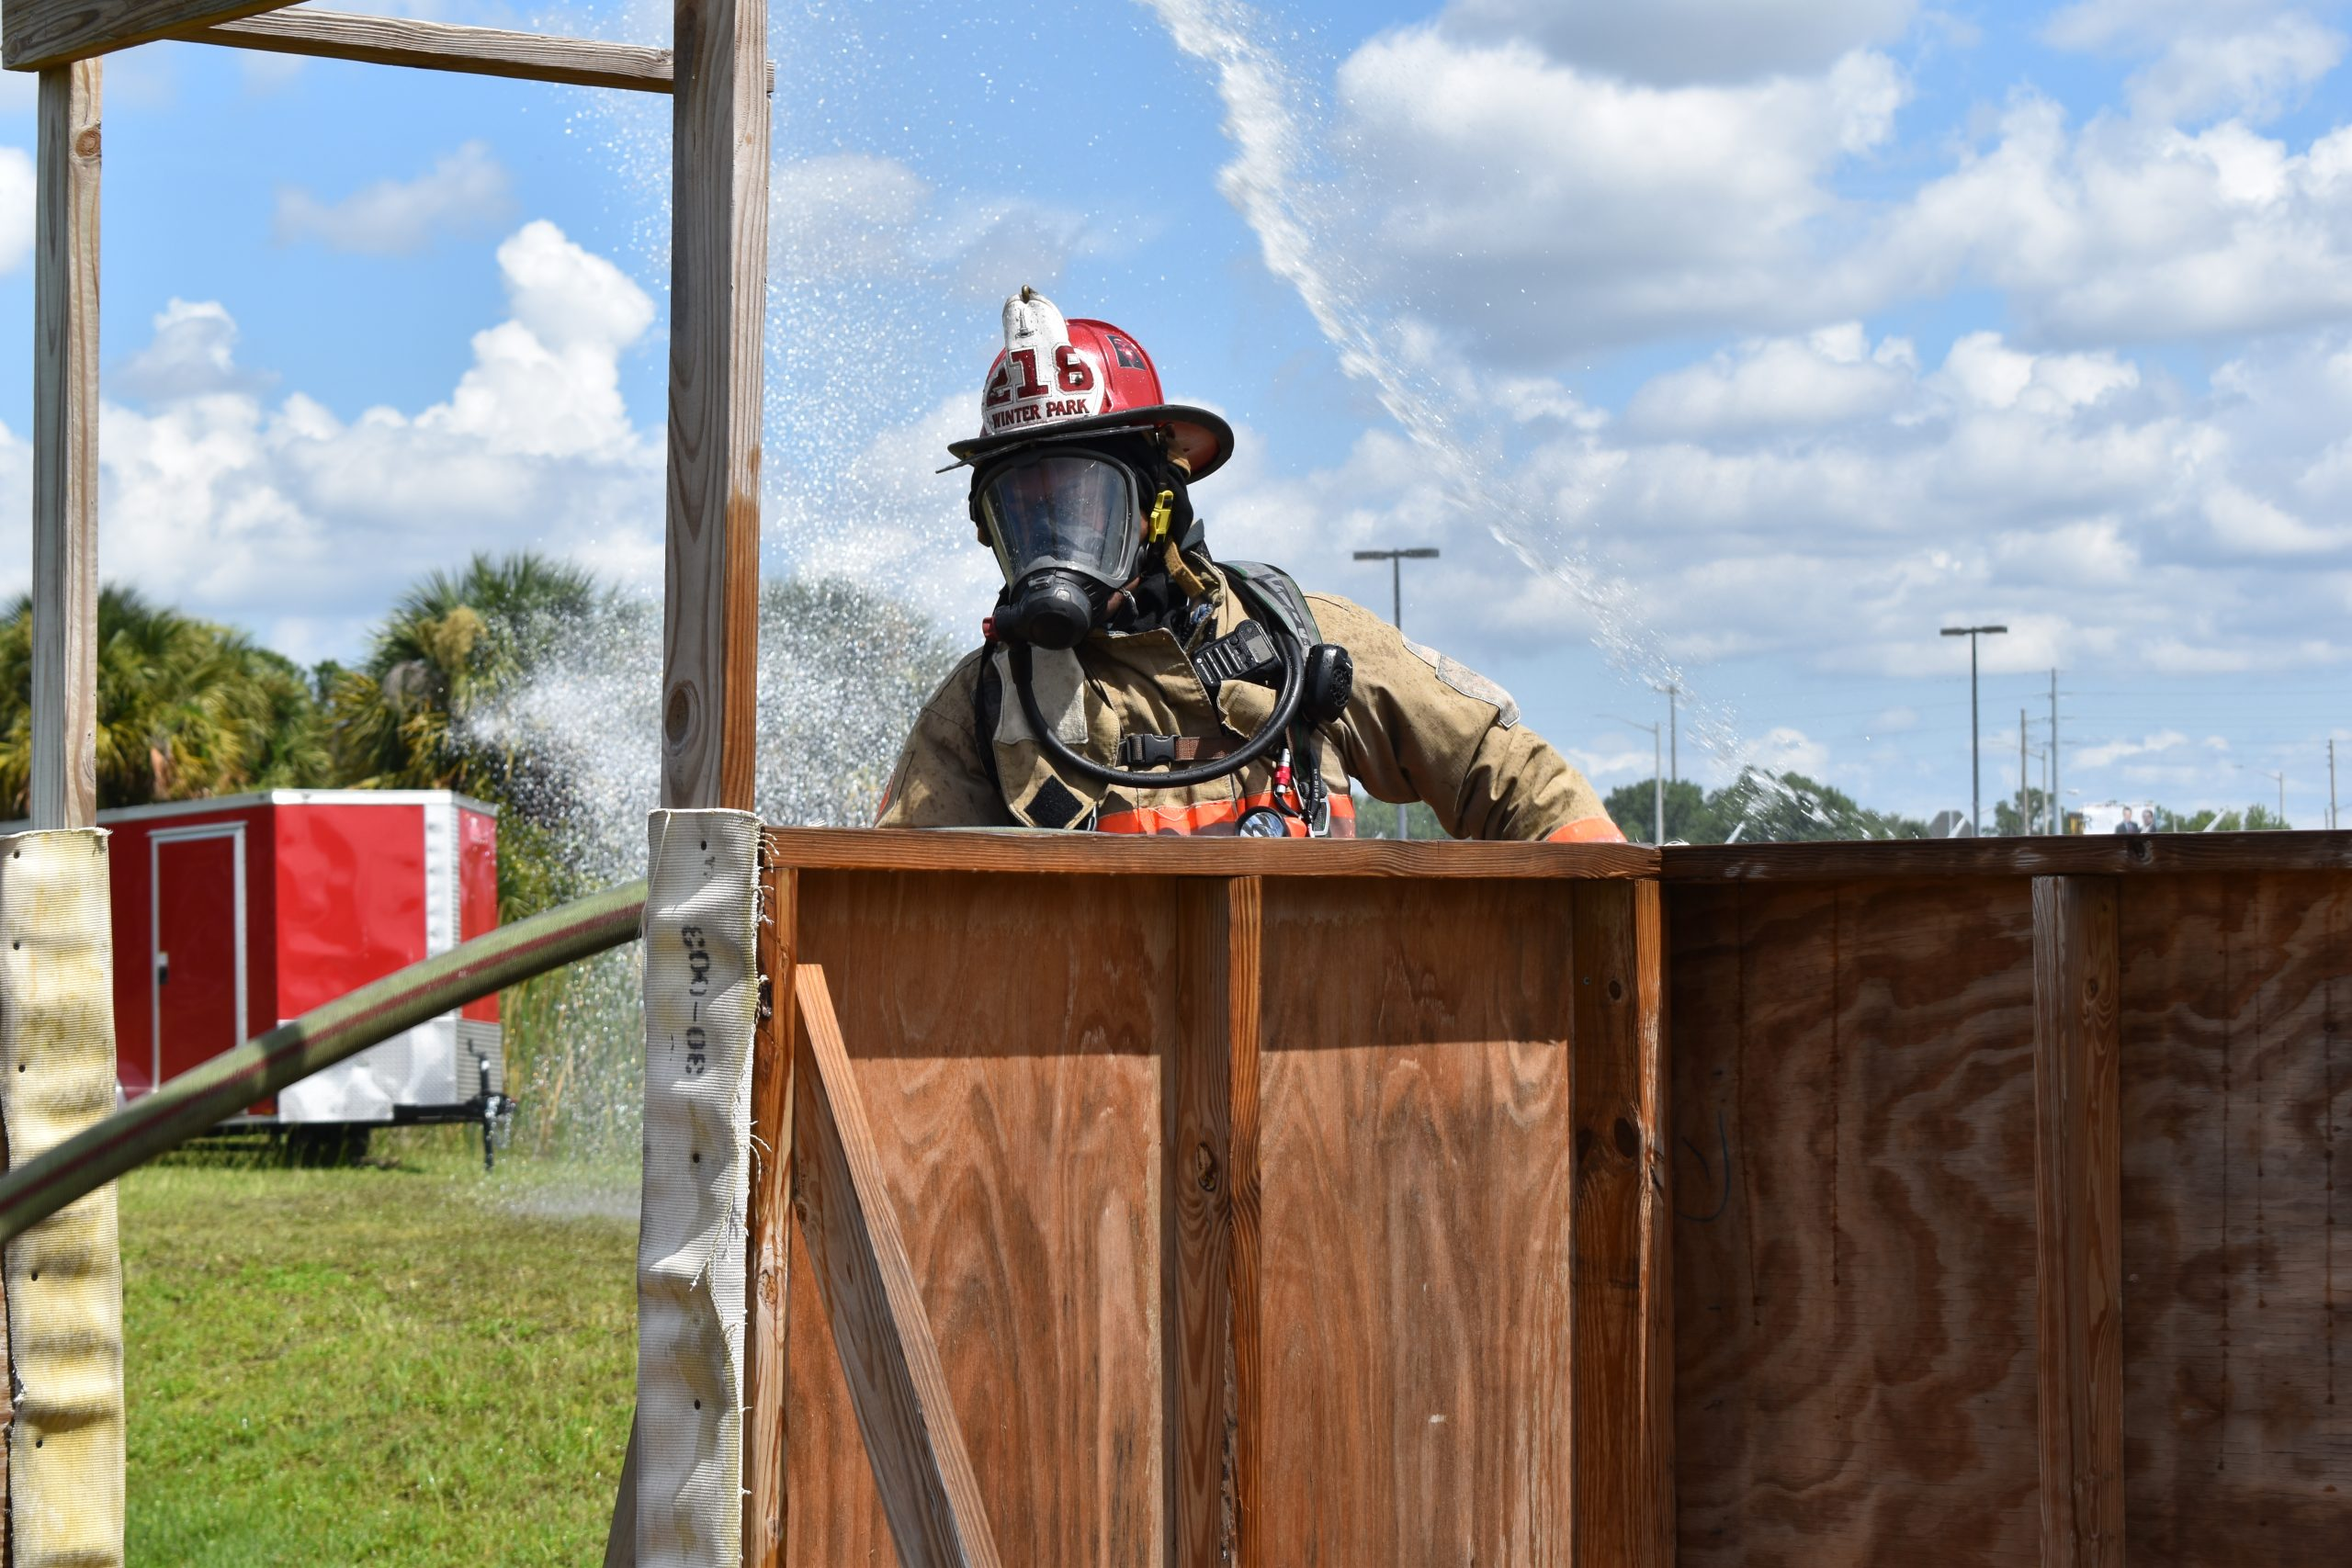 Firefighter pulling a hose line inside a small structure.